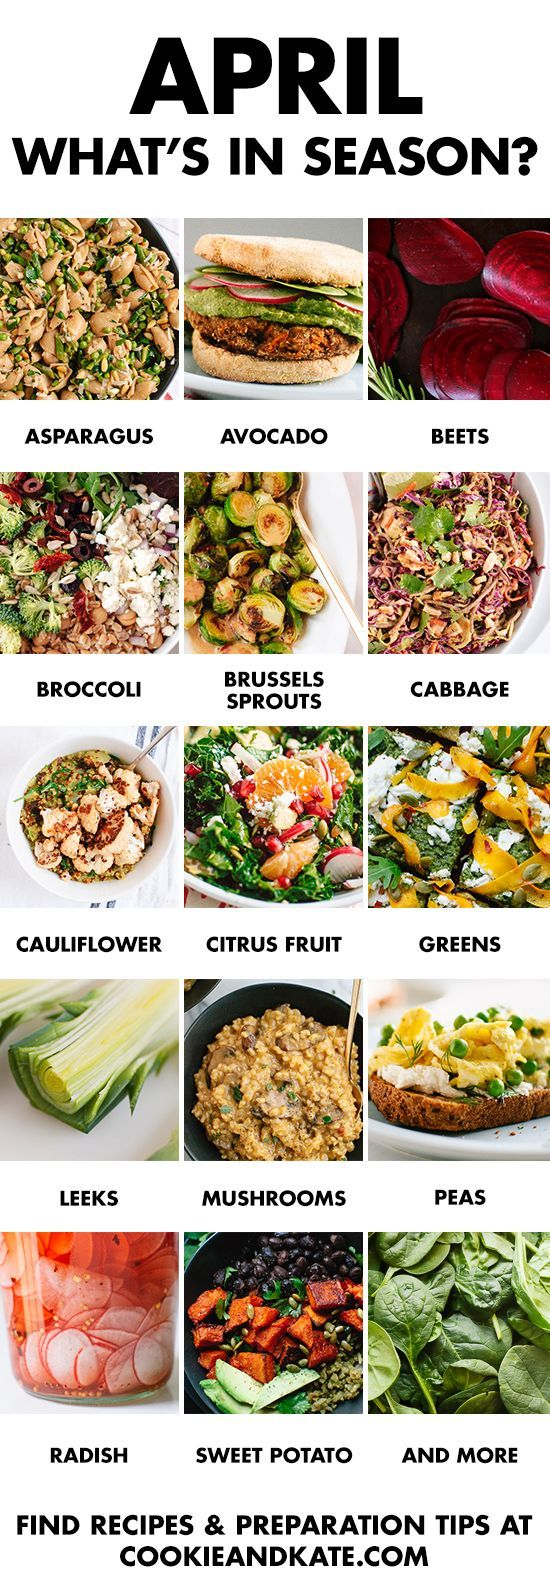 Eat seasonally with this guide to April fruits and vegetables. Find recipes and preparation tips at cookieandkate.com